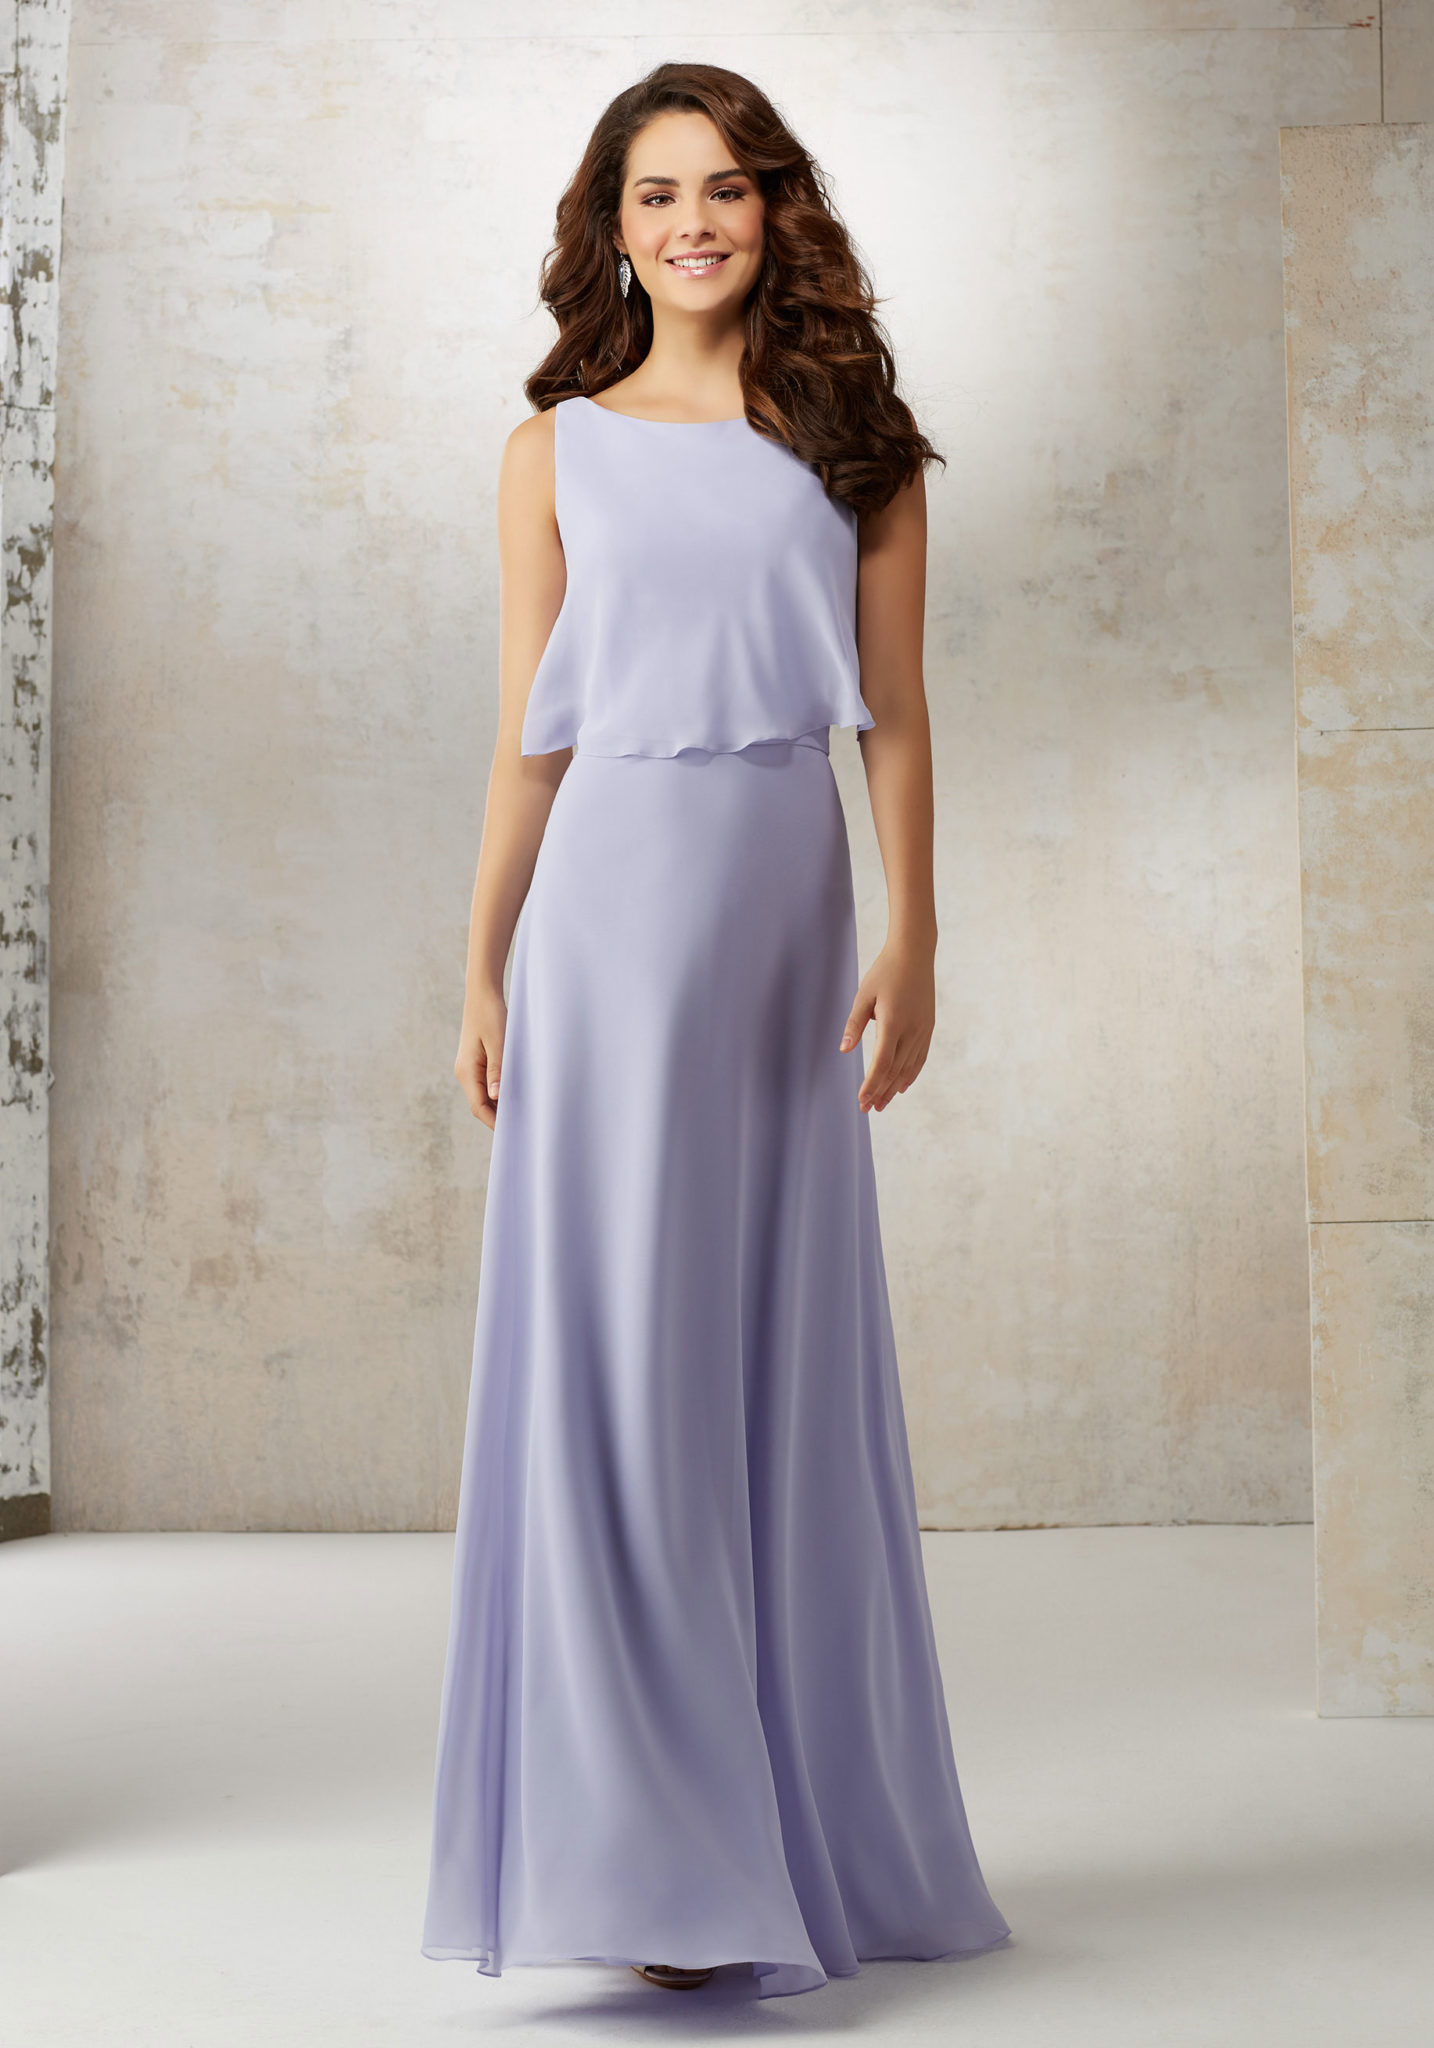 Bridesmaids lauries bridal scottsdale arizona wedding dress lauries offers bridesmaids samples in all different sizes colors and fabrics our bridesmaids average in price between 150 180 ombrellifo Images